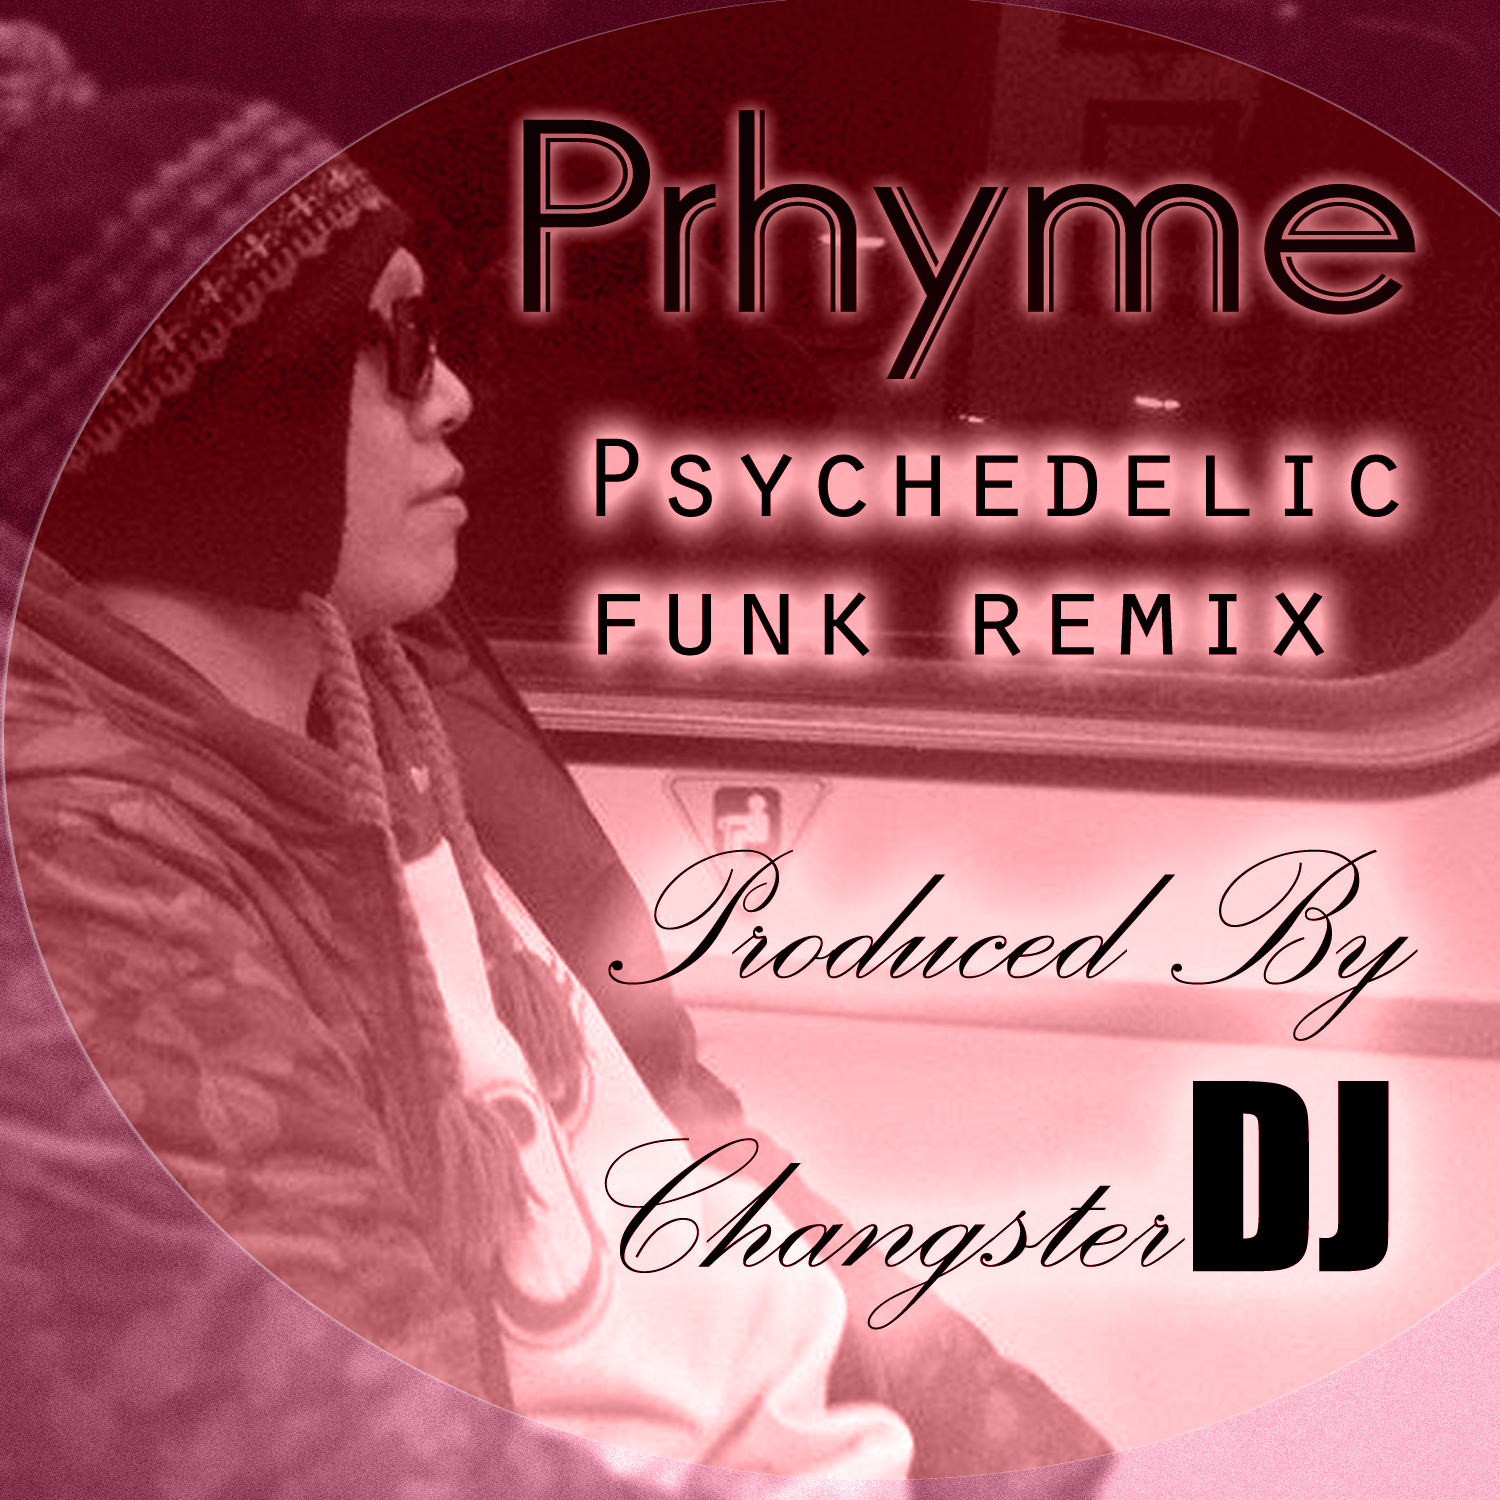 Prhyme (Changster Psychedelic Funk Remix)